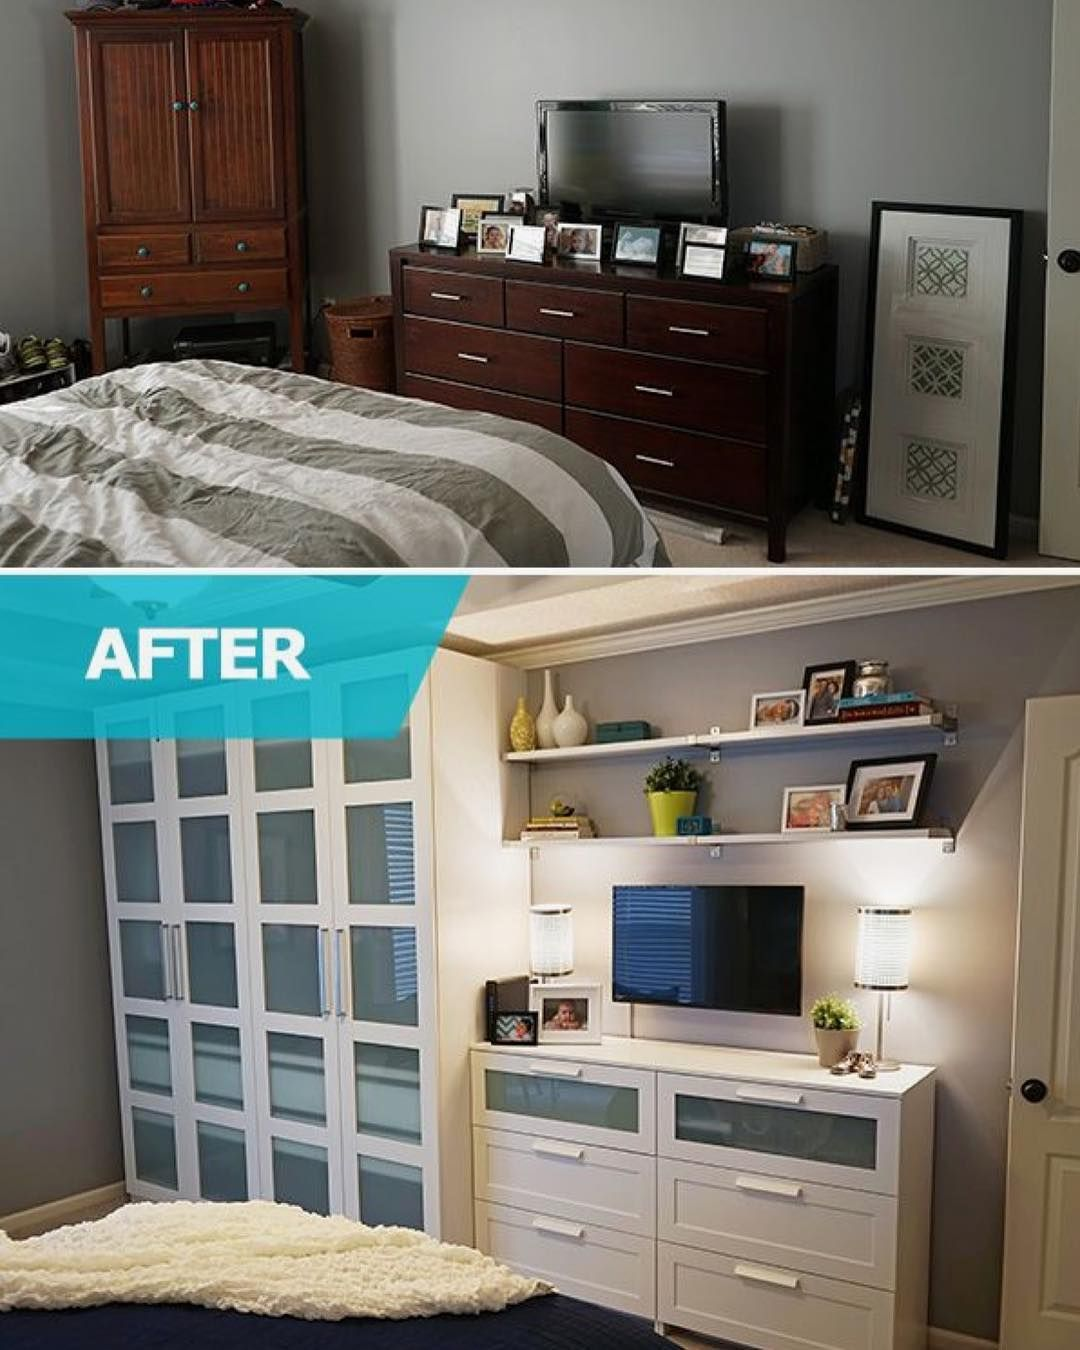 Bedrooms This is such an awesome idea